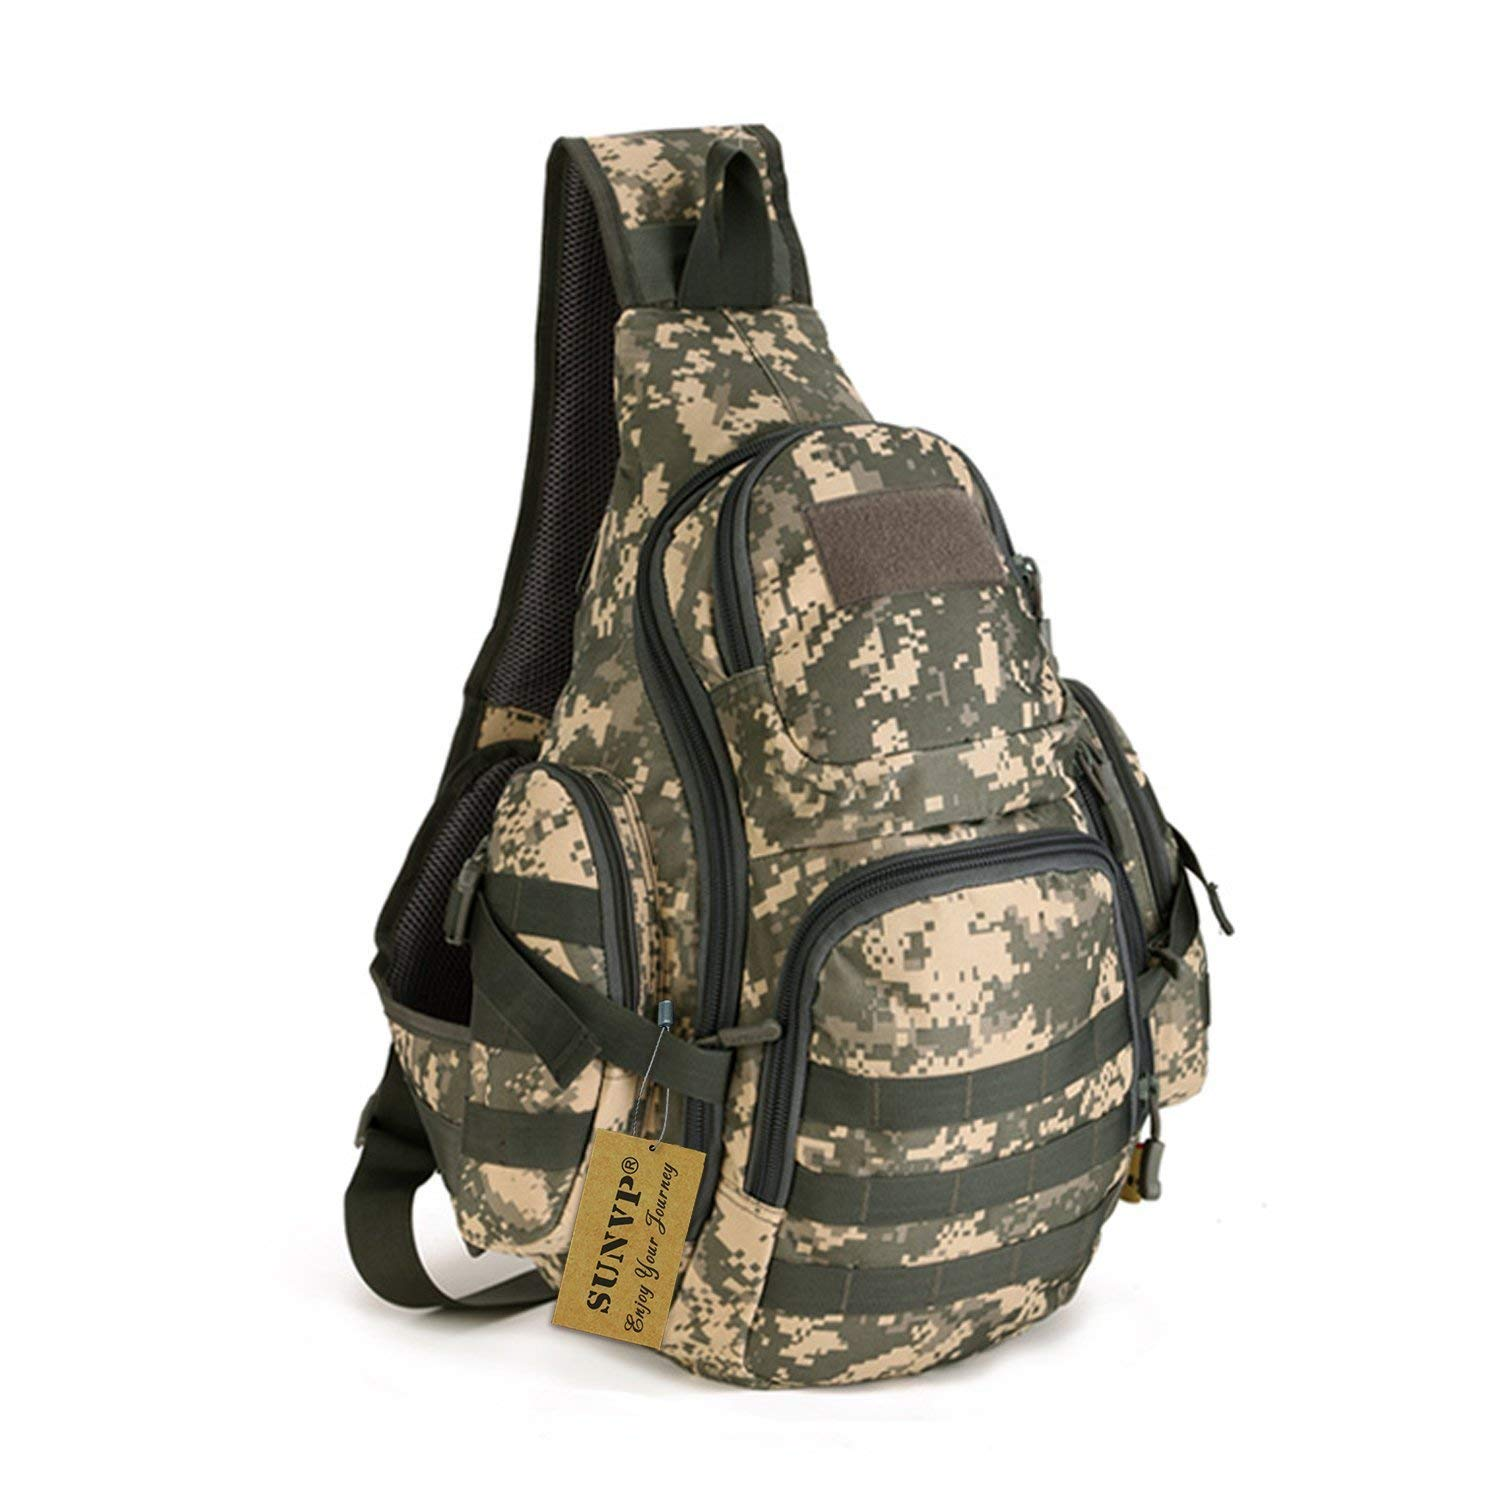 Protector Plus Tactical Military Daypack Sling Chest Pack Bag Molle Laptop Backpack Large Shoulder Bag Crossbody Duty Gear For Hunting Camping Trekking [並行輸入品] B07R4T4CLX